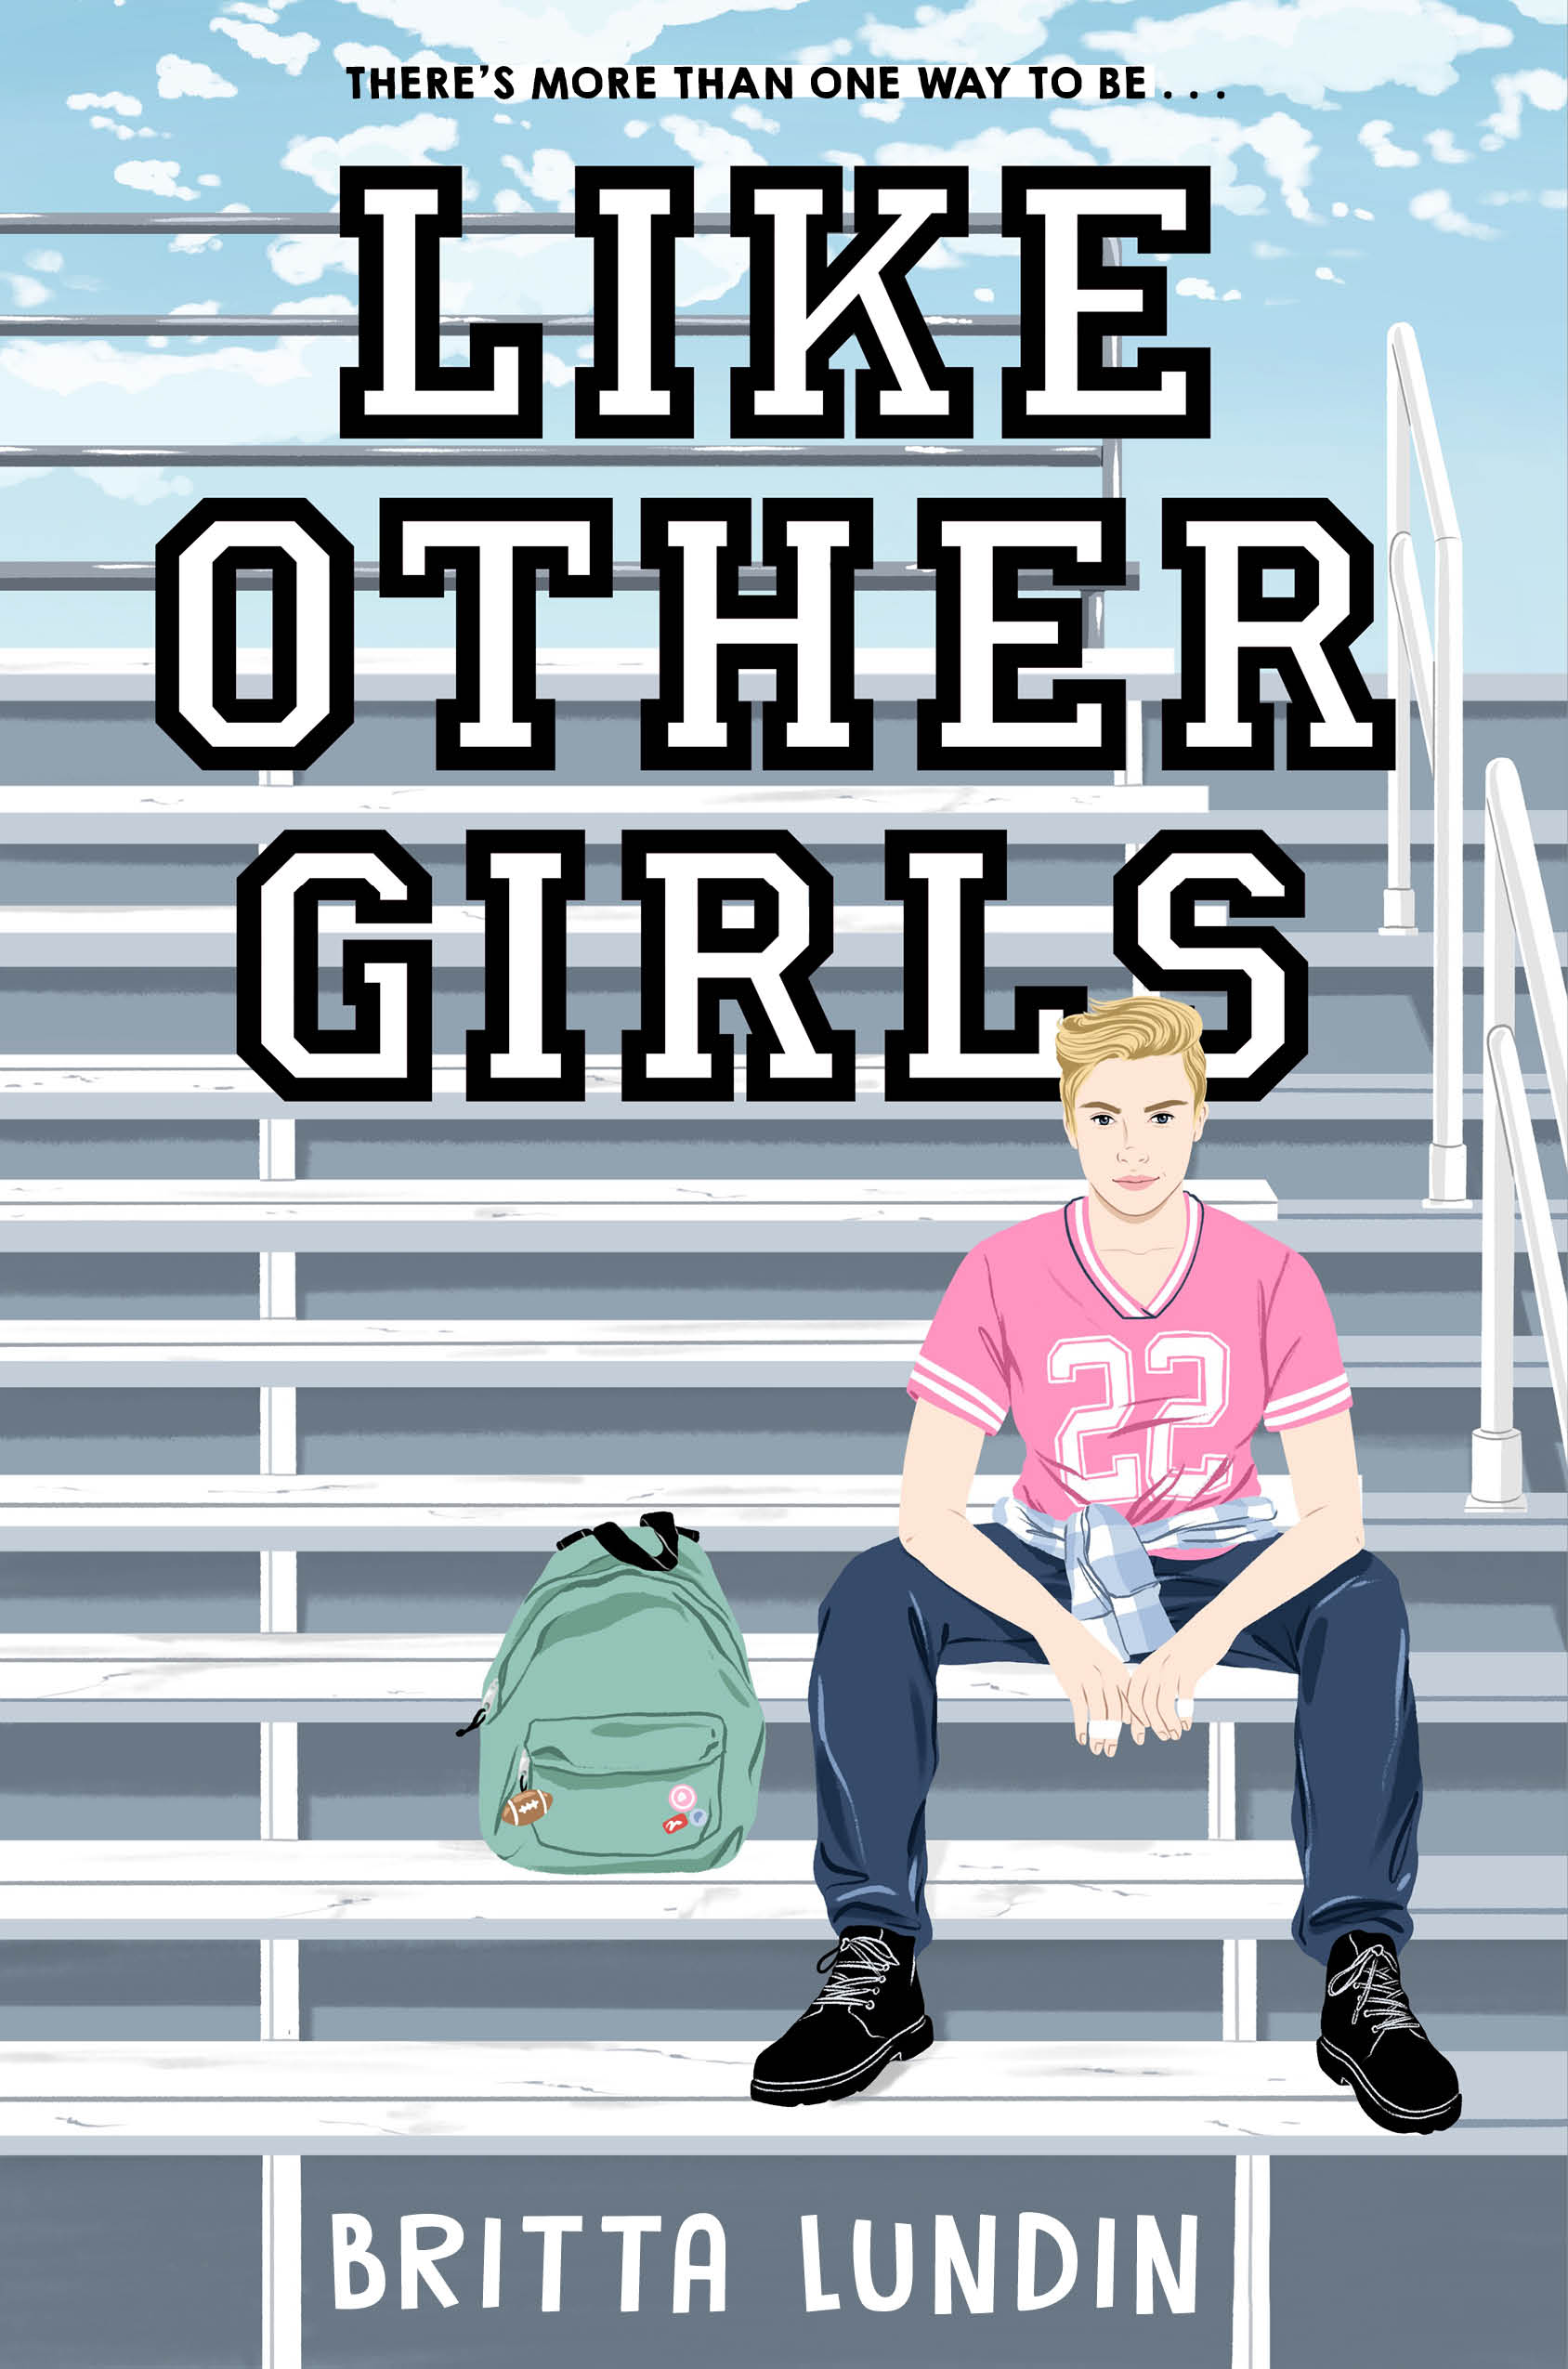 a white, tall teen girl with short blonde hair sitting with attitude and spread legs on a set of bleachers, wearing a pink football jersey. Title says LIKE OTHER GIRLS.